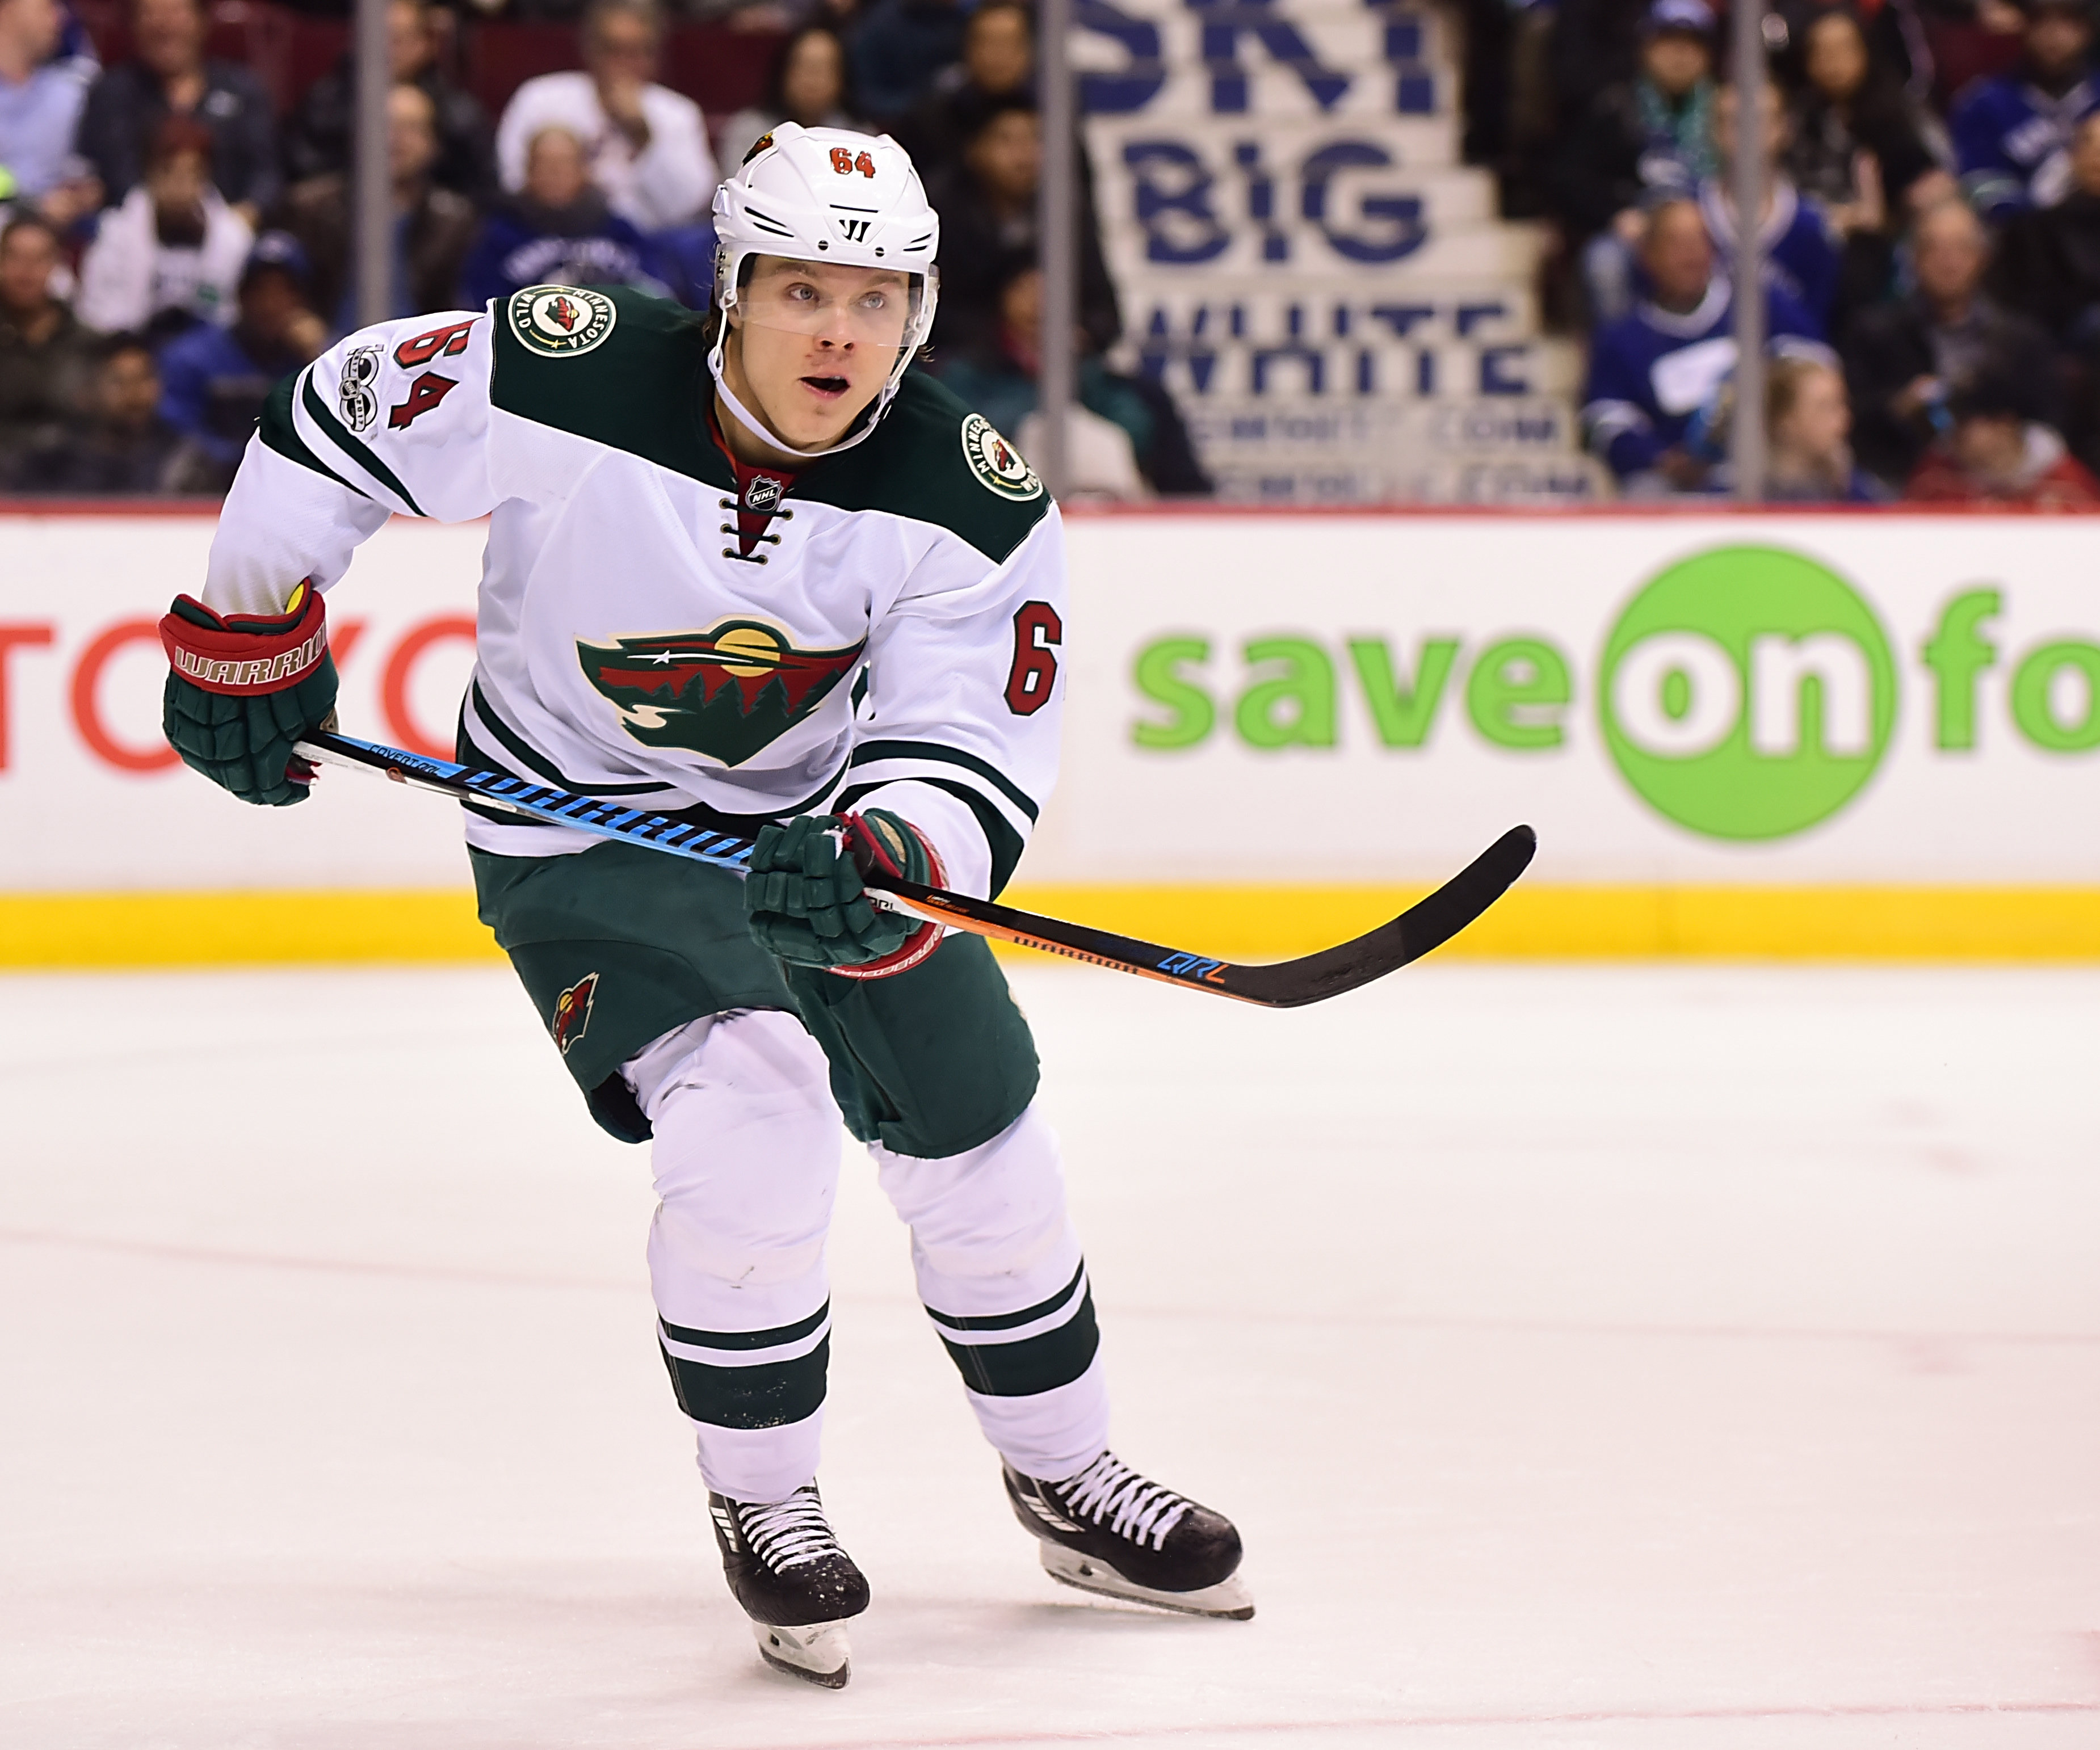 9859953-nhl-minnesota-wild-at-vancouver-canucks-1